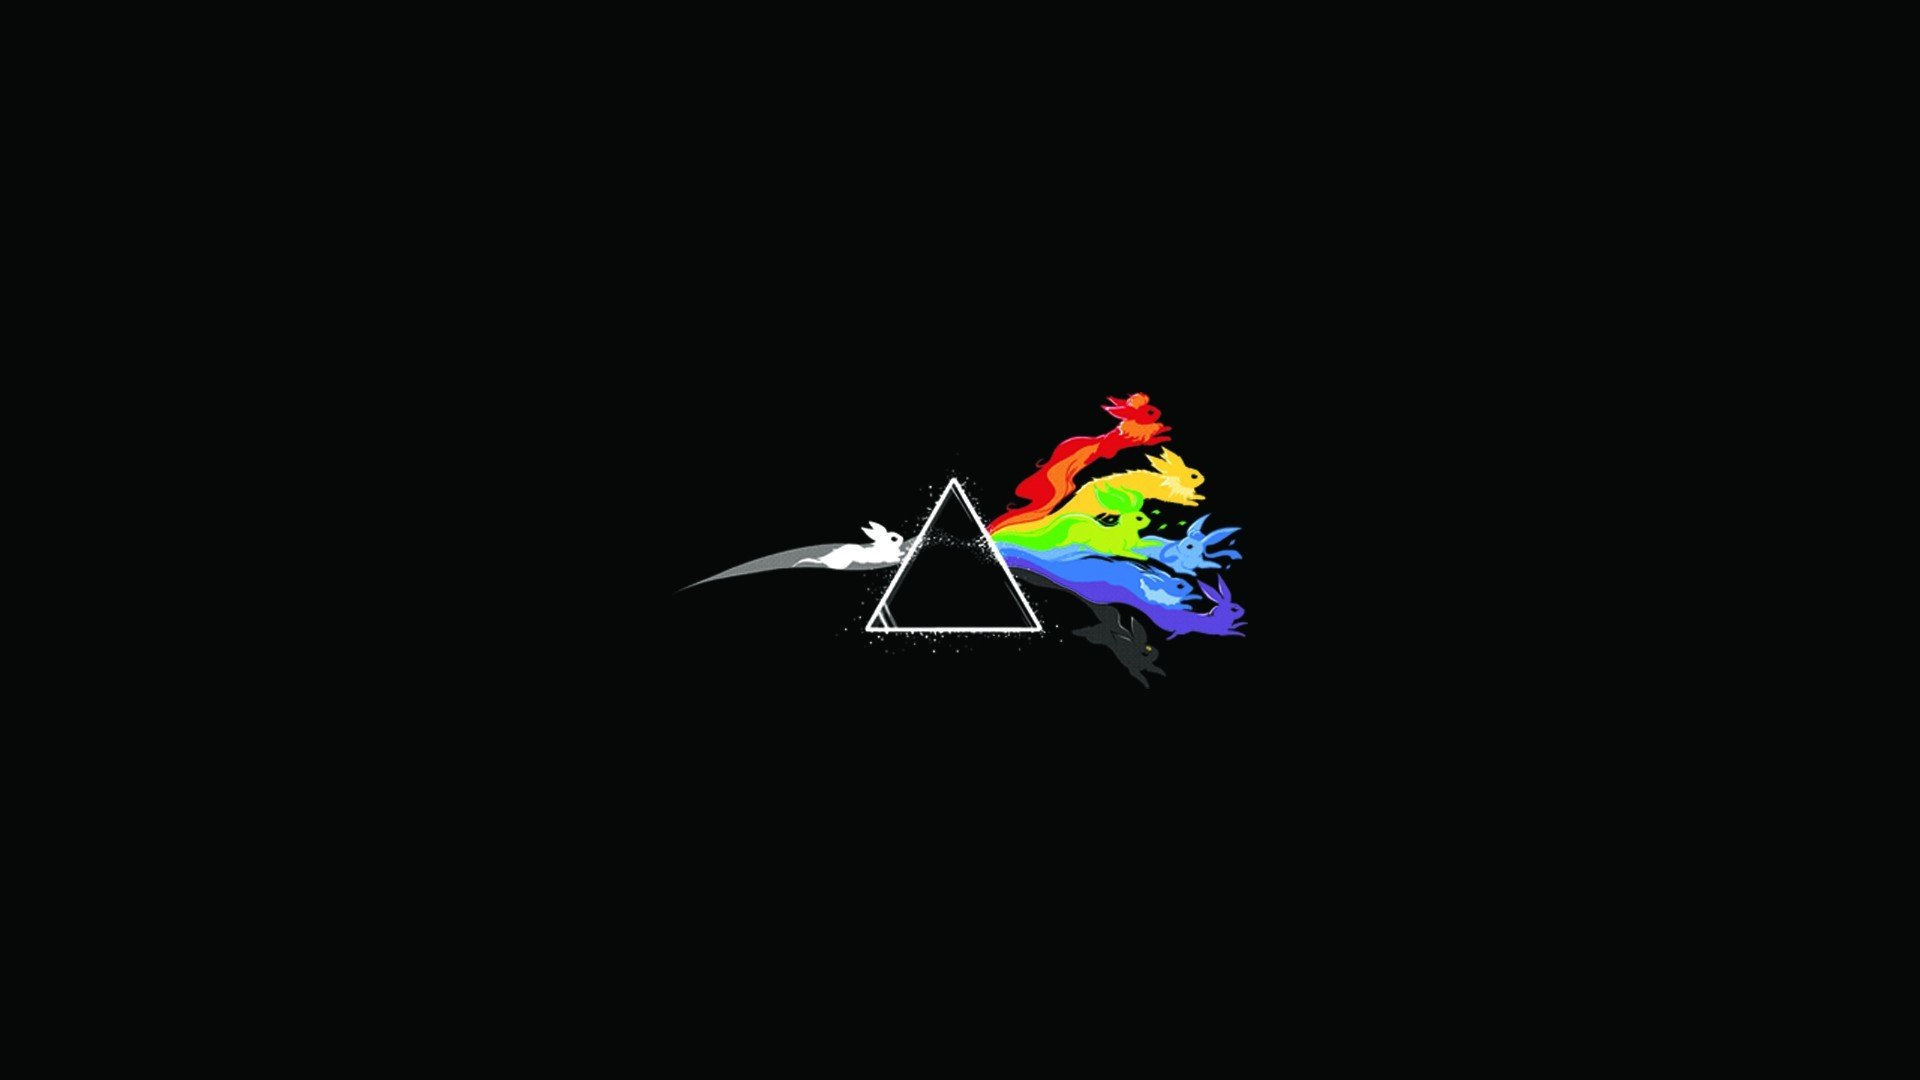 Pokemon Pink Floyd The Dark Side Of The Moon Hd Wallpapers